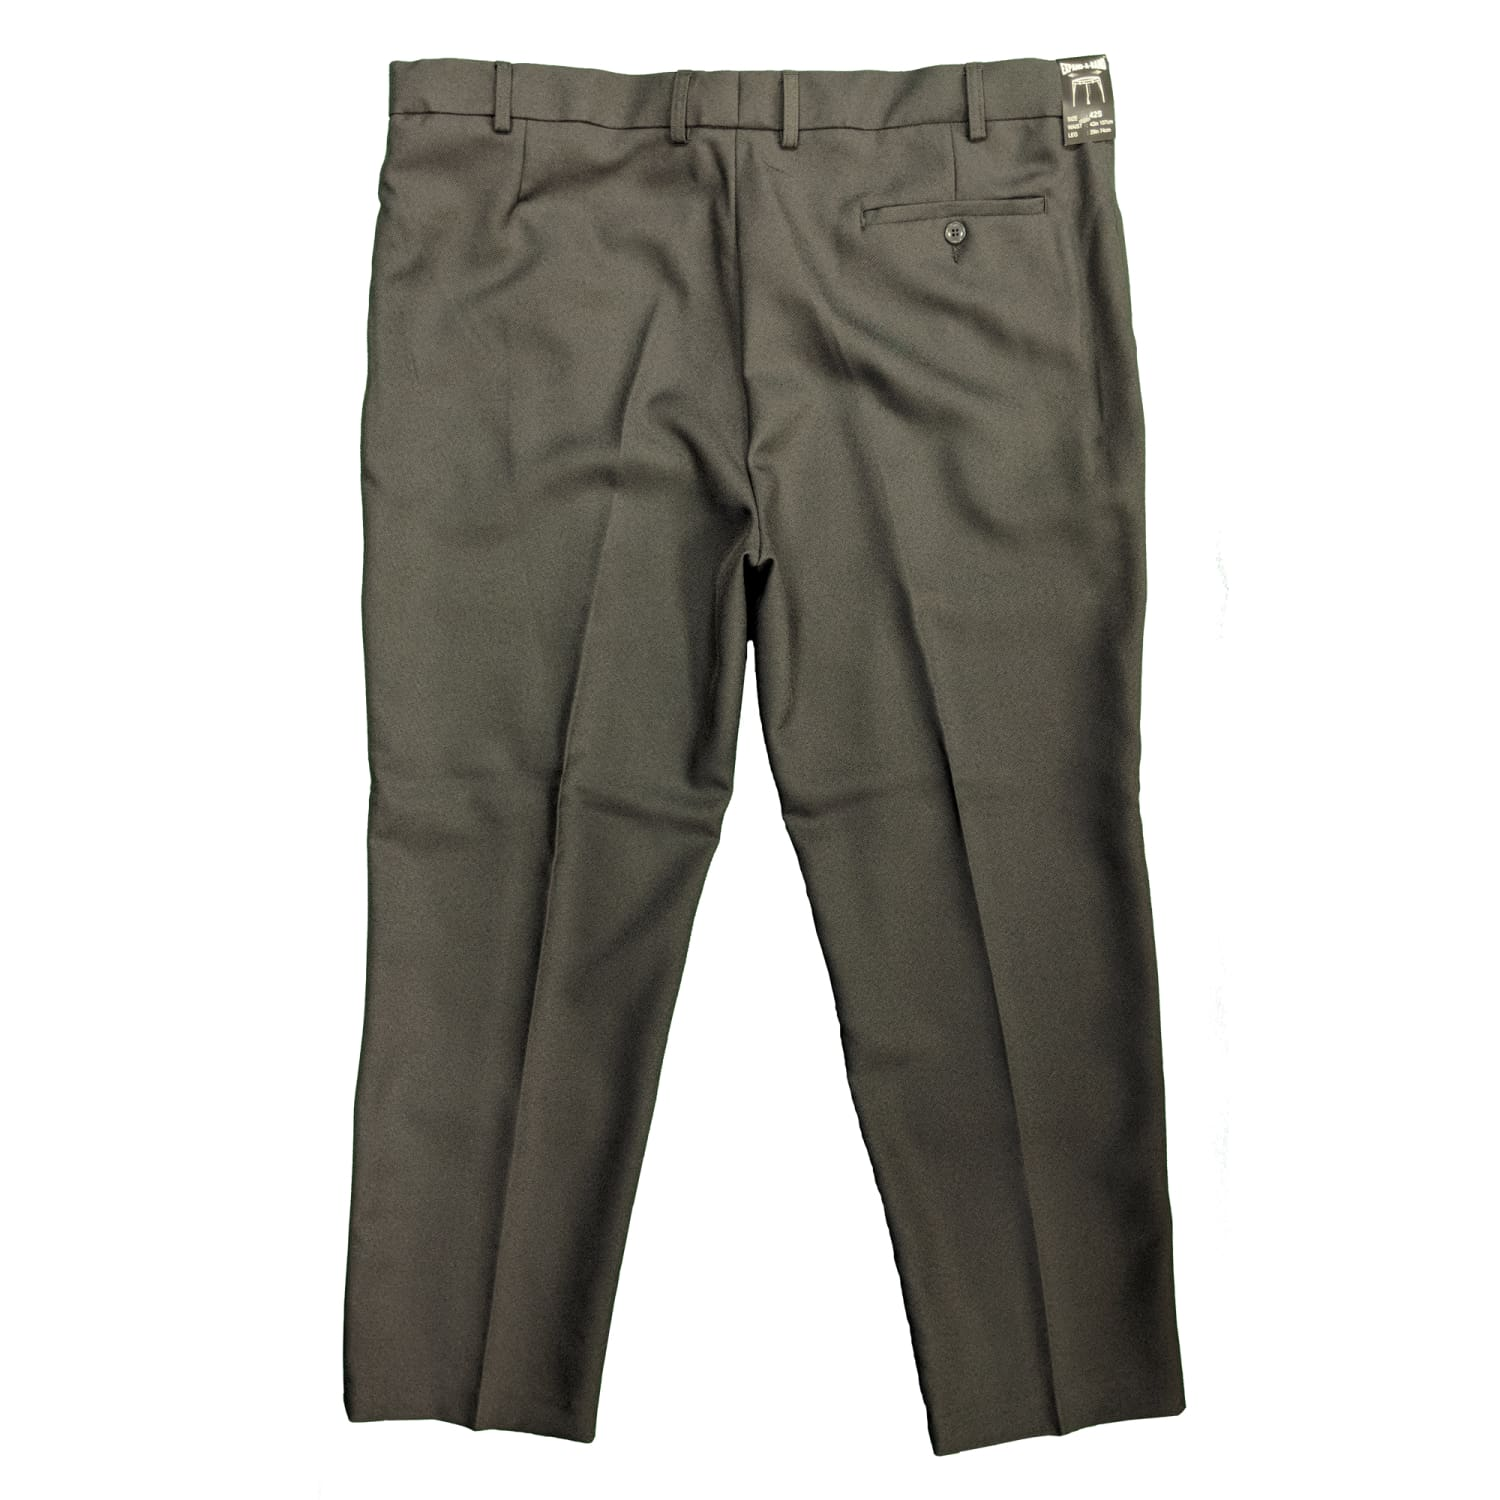 Carabou Trousers - GEP - Steel 1